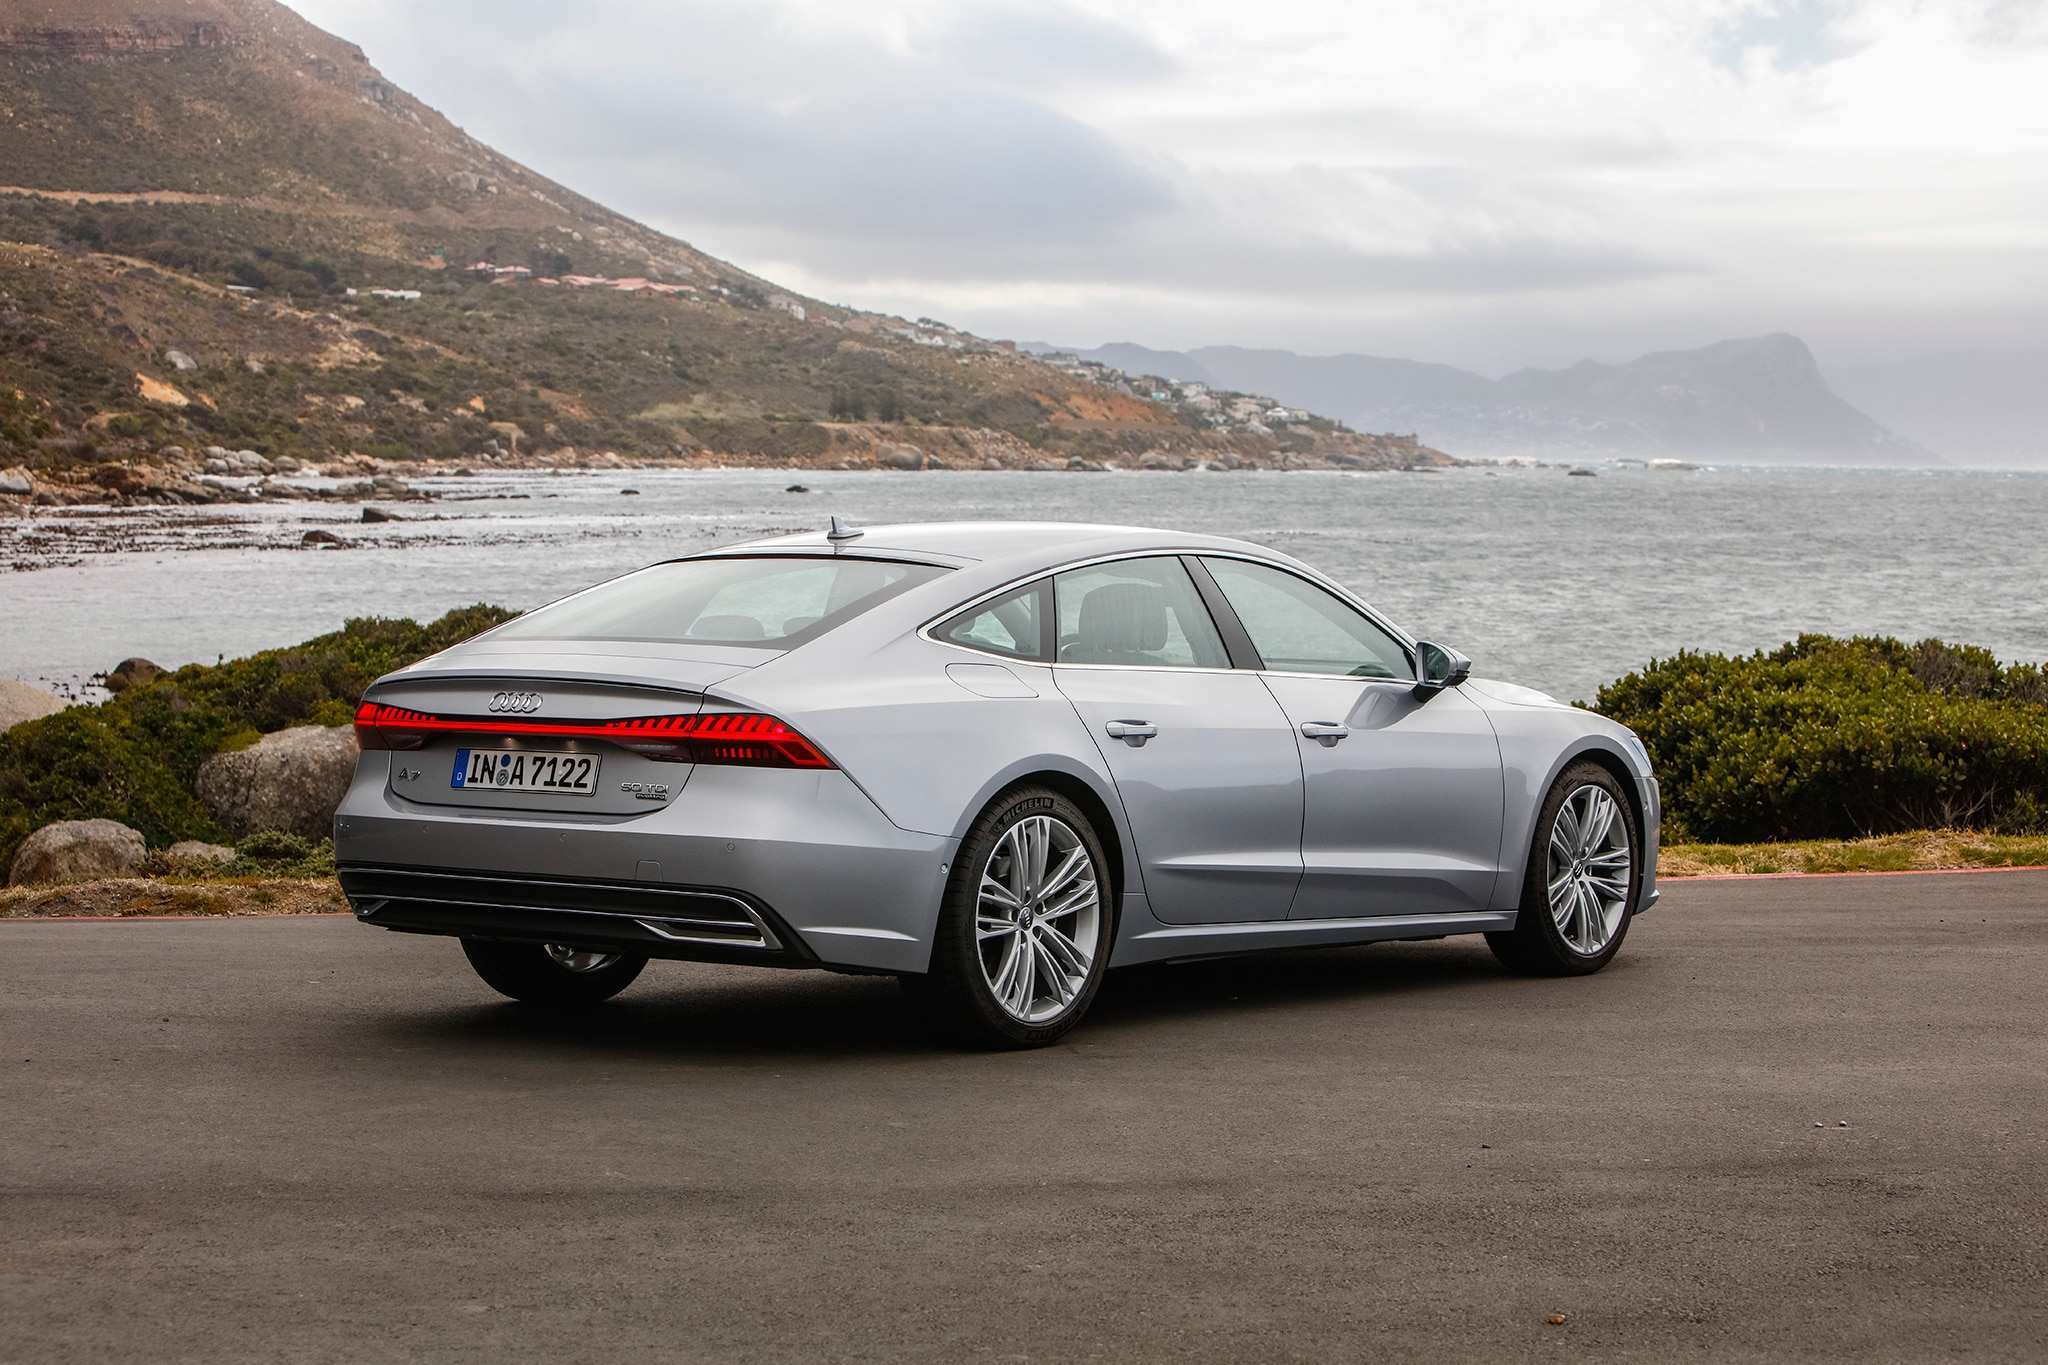 54 All New 2019 Audi A7 0 60 History by 2019 Audi A7 0 60